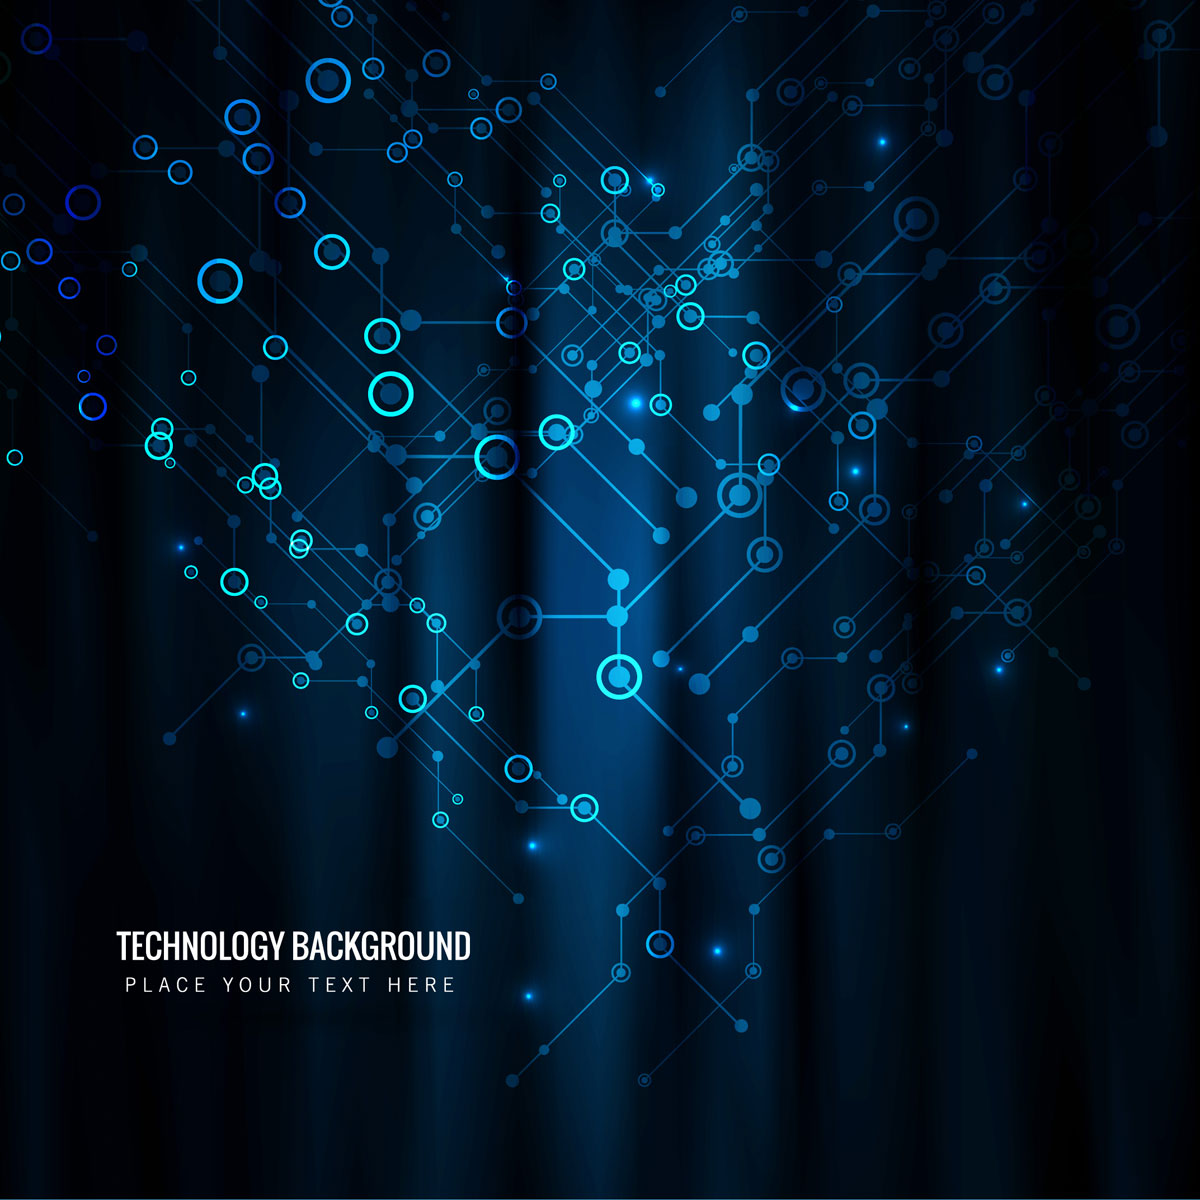 Abstract technology background design illustration